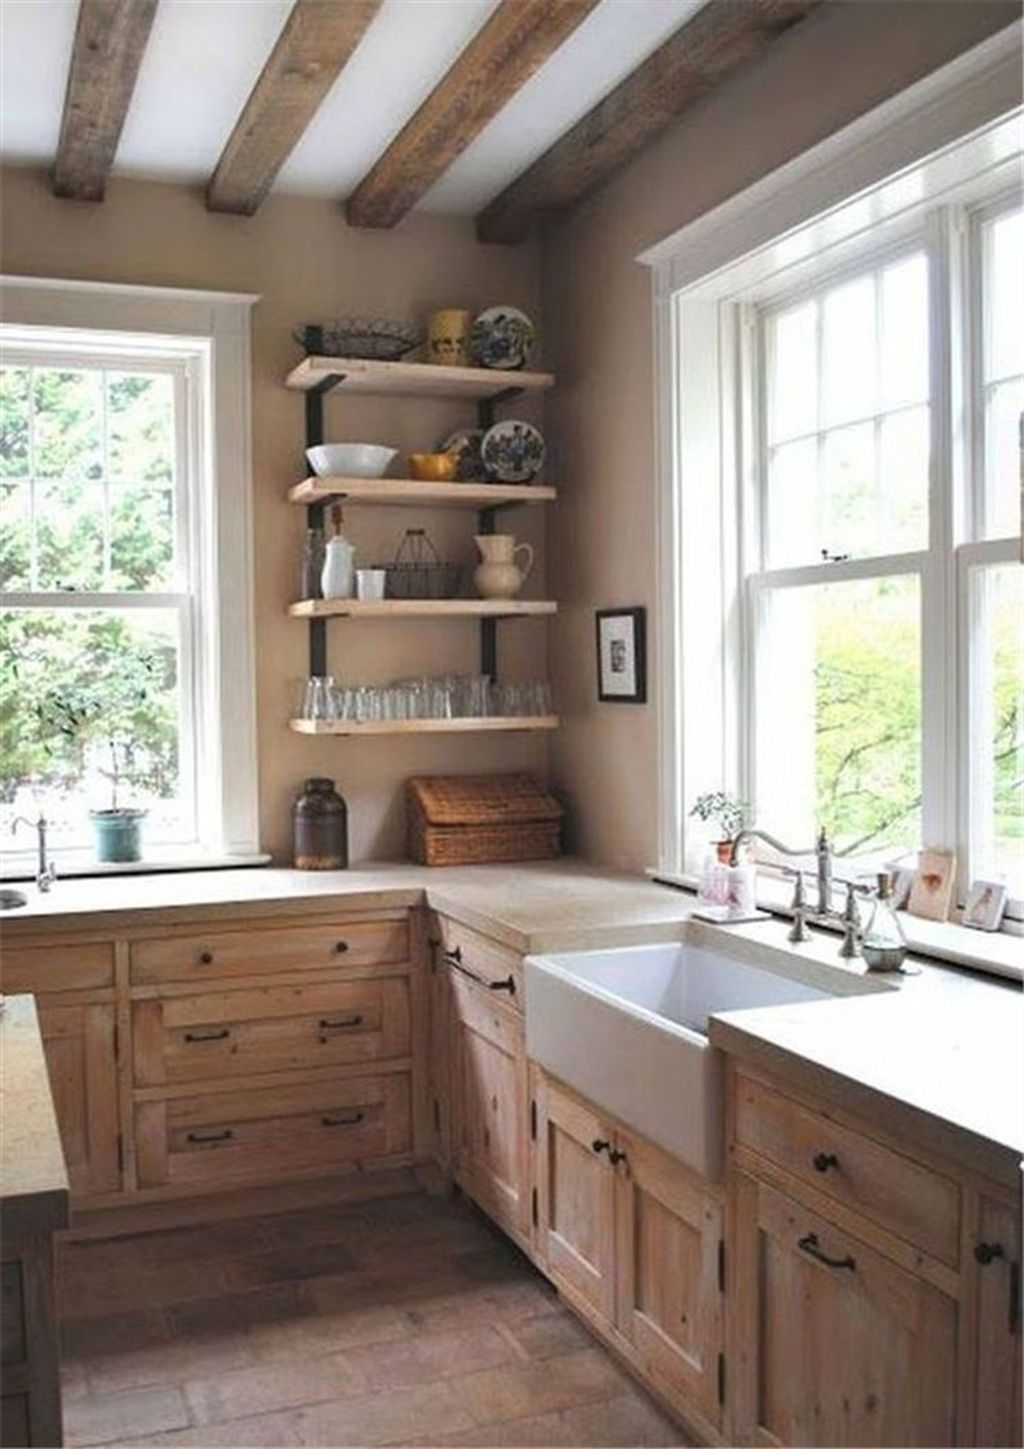 Nice Rustic Farmhouse Kitchen Cabinets Design Ideas 24